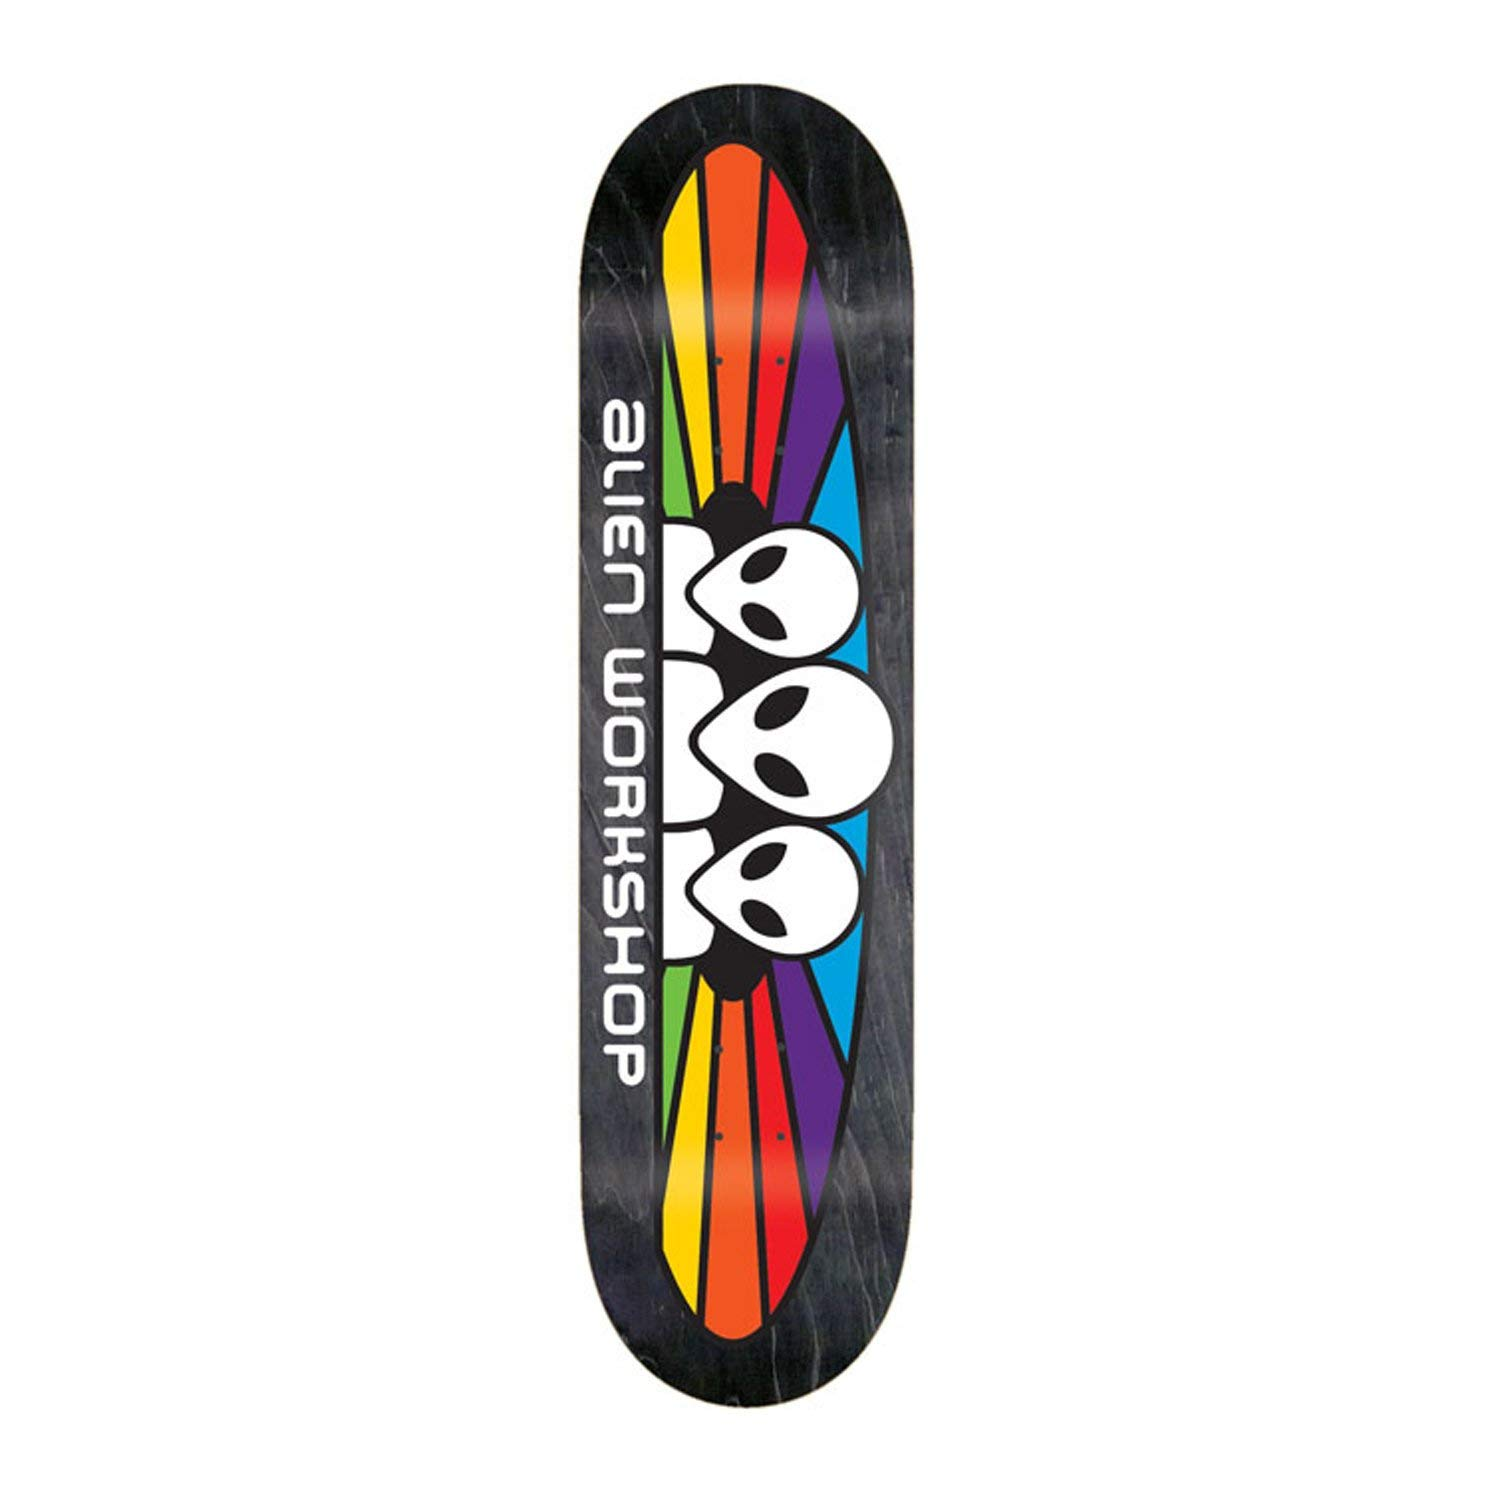 "ALIEN WORKSHOP Skateboard Deck SPECTRUM LG 8.25"" (assorted colors)"